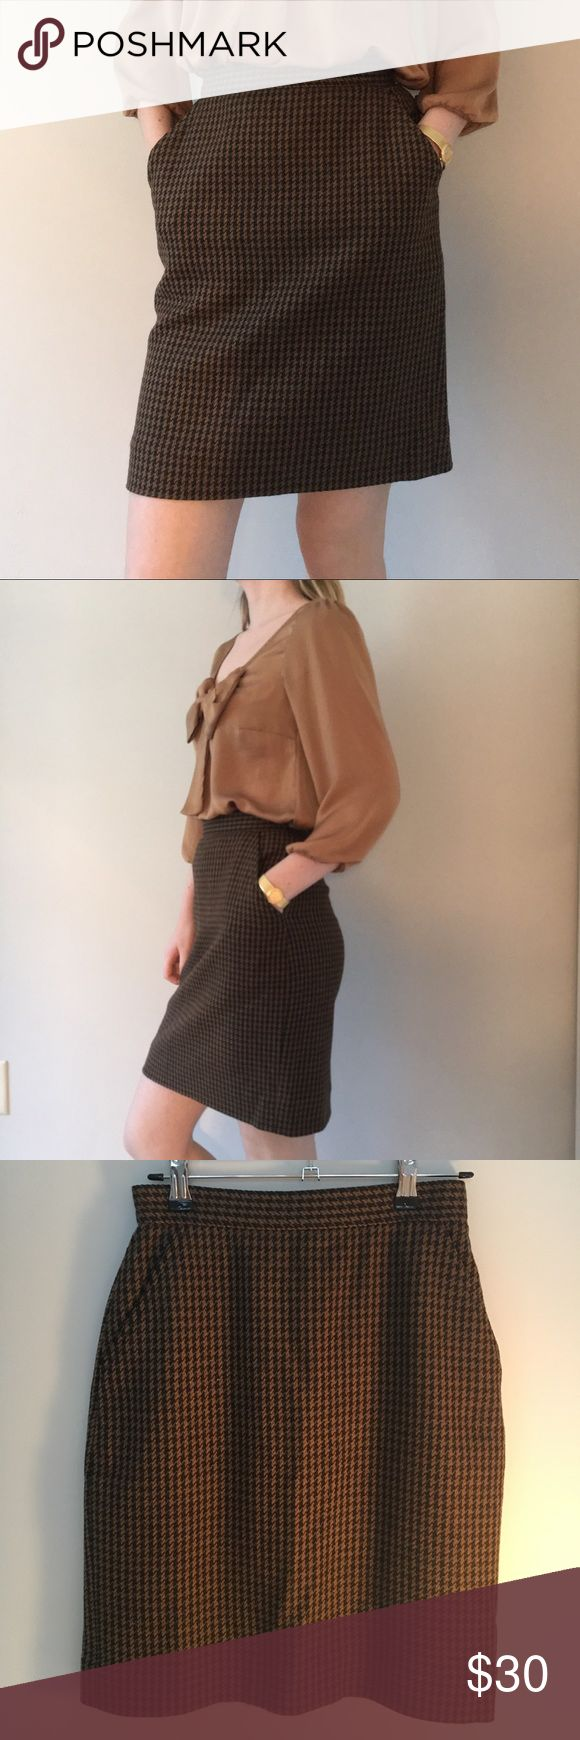 Calvin Klein Classic Wool Skirt Classic tweed skirt, beautiful vintage look to it! Silk inside so it feels great on the skin.  (It is labeled as a size 4, but runs very small so it is much more comfortable for a size 0 or 2) Calvin Klein Skirts Pencil